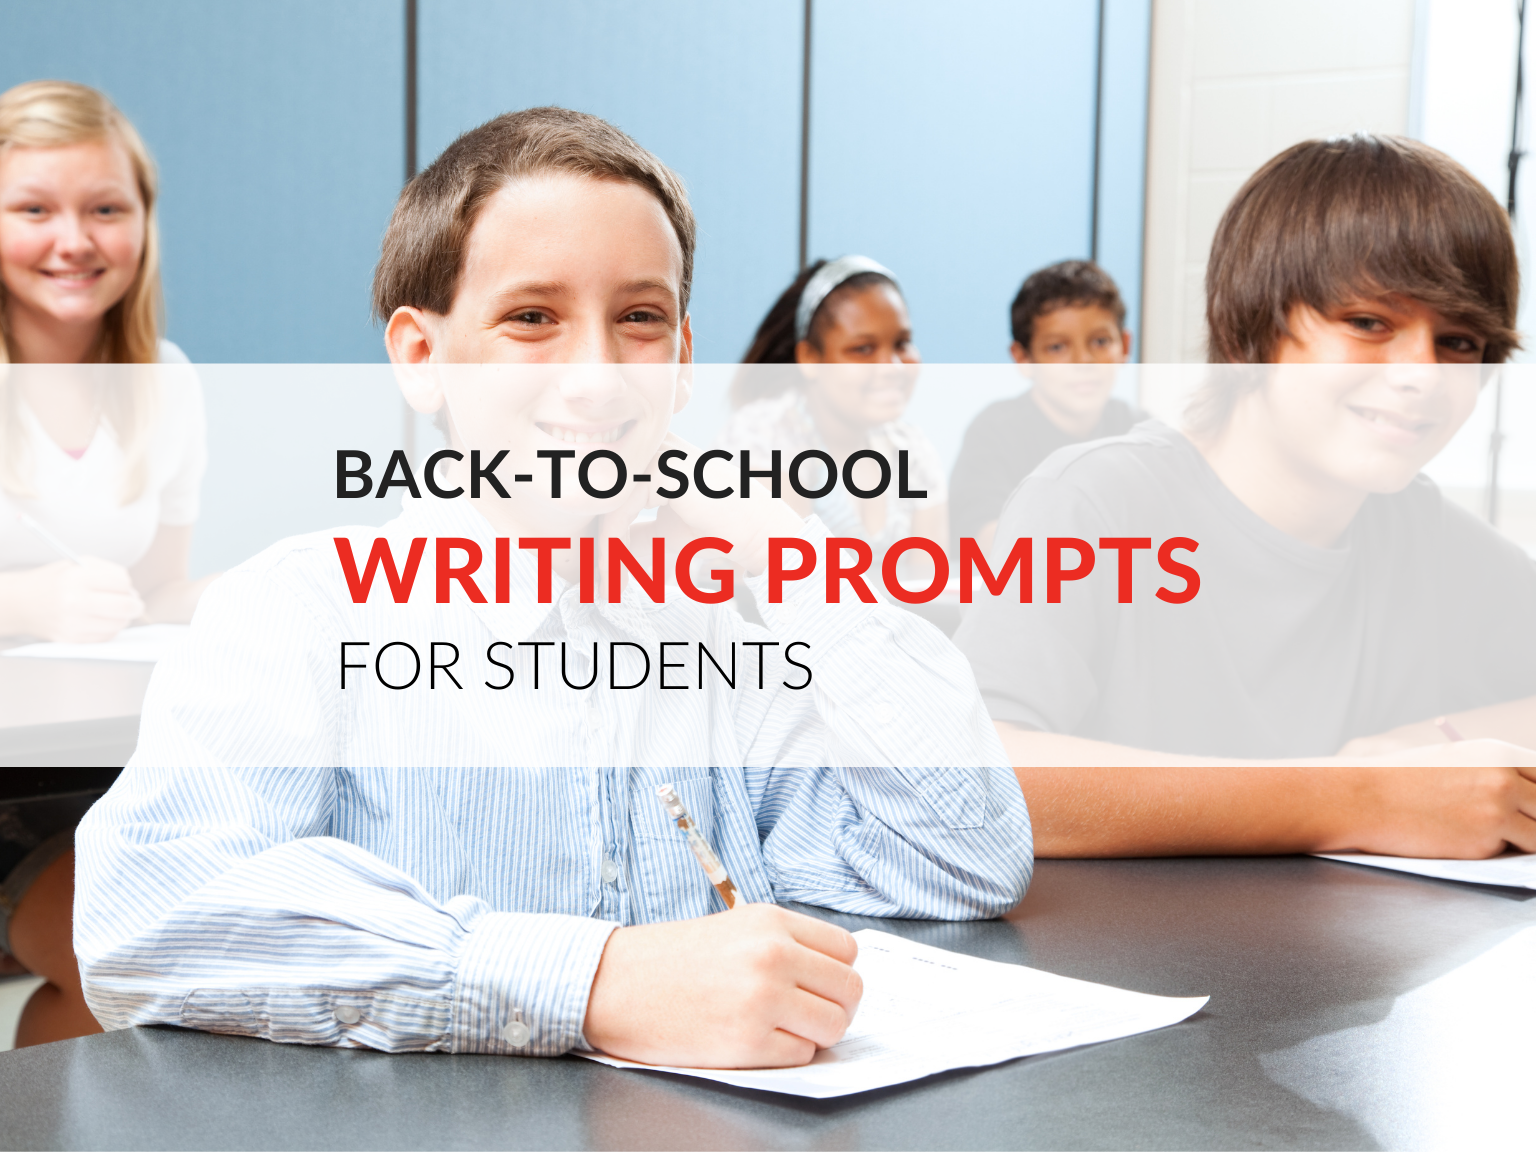 back-to-school-writing-prompts-for-students